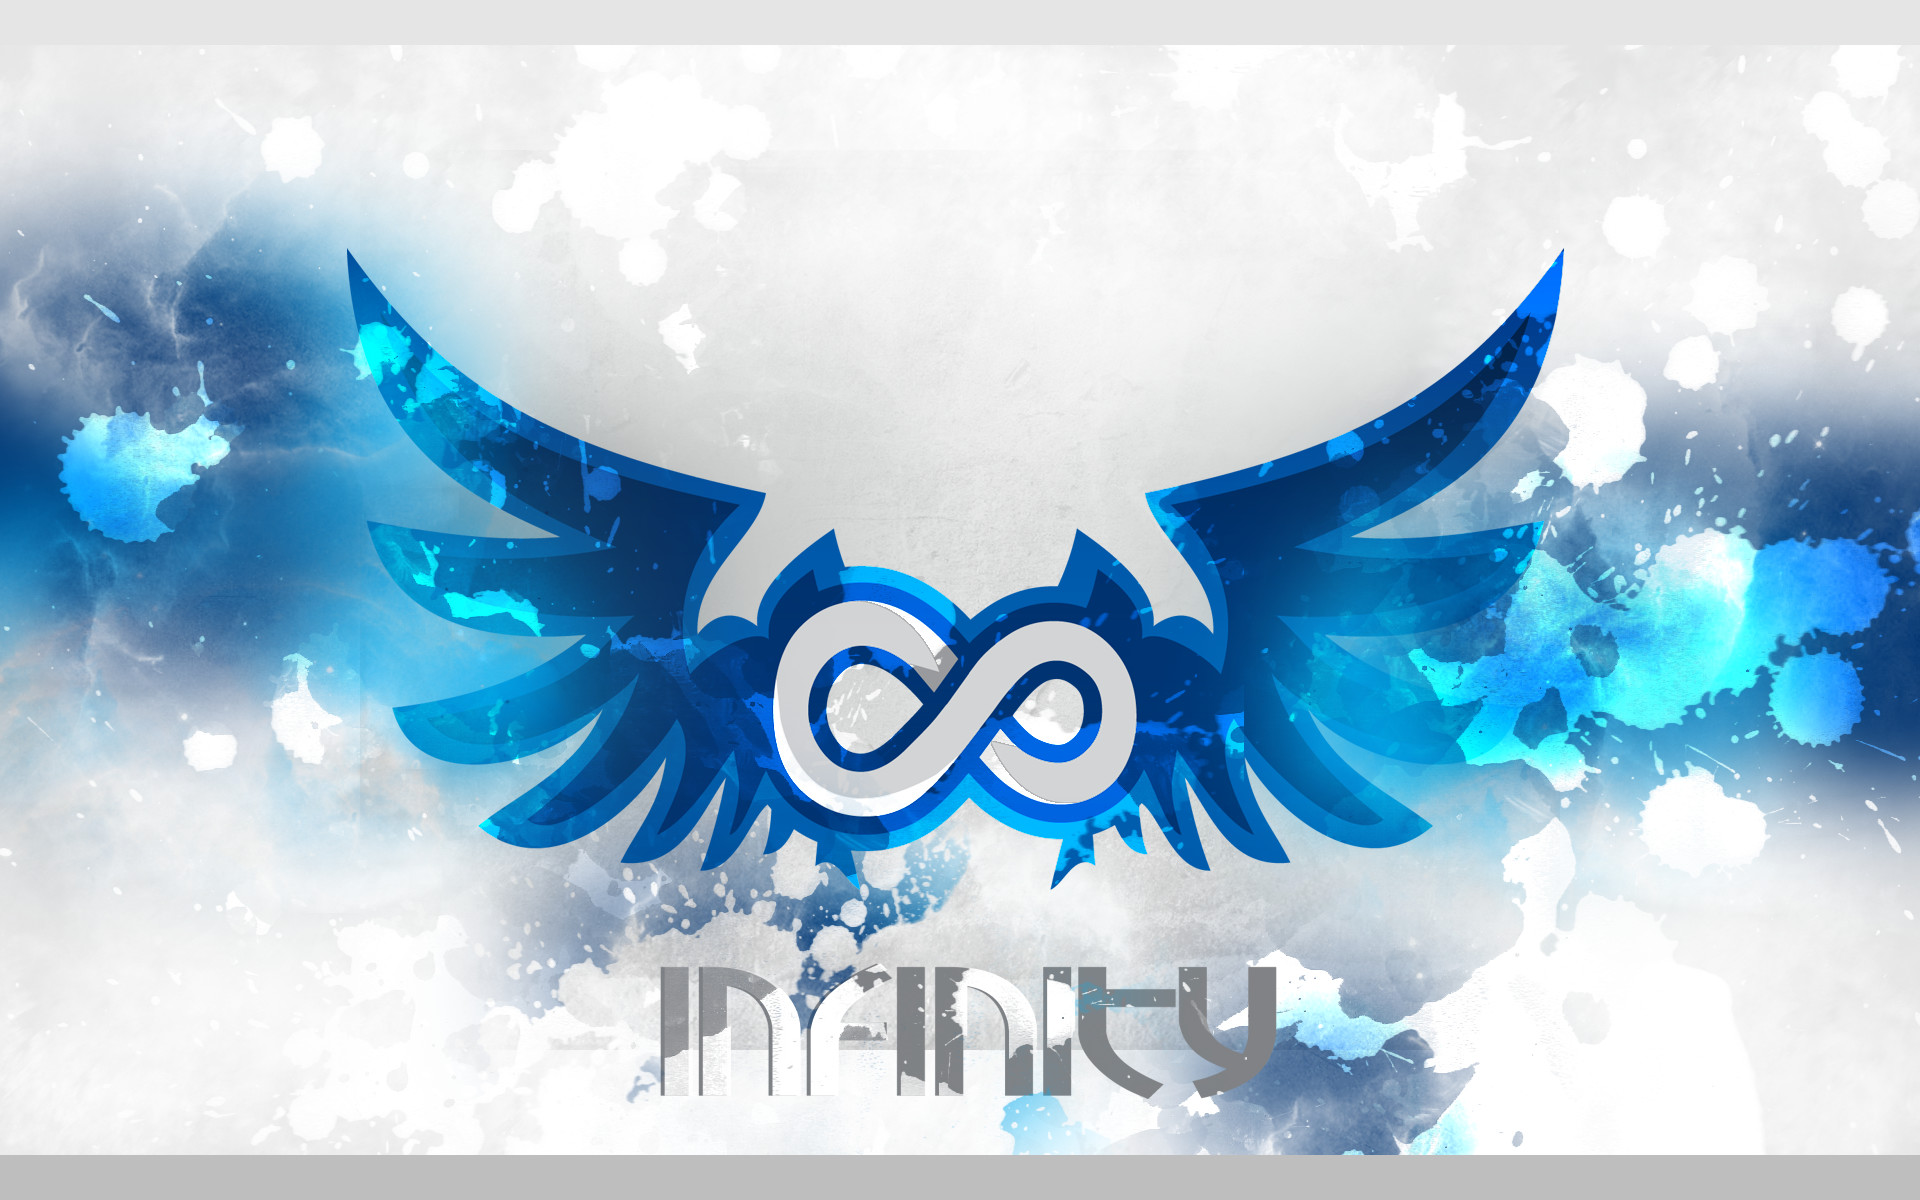 Cute Infinity Wallpaper: Galaxy Infinity Sign Wallpapers (71+ Images